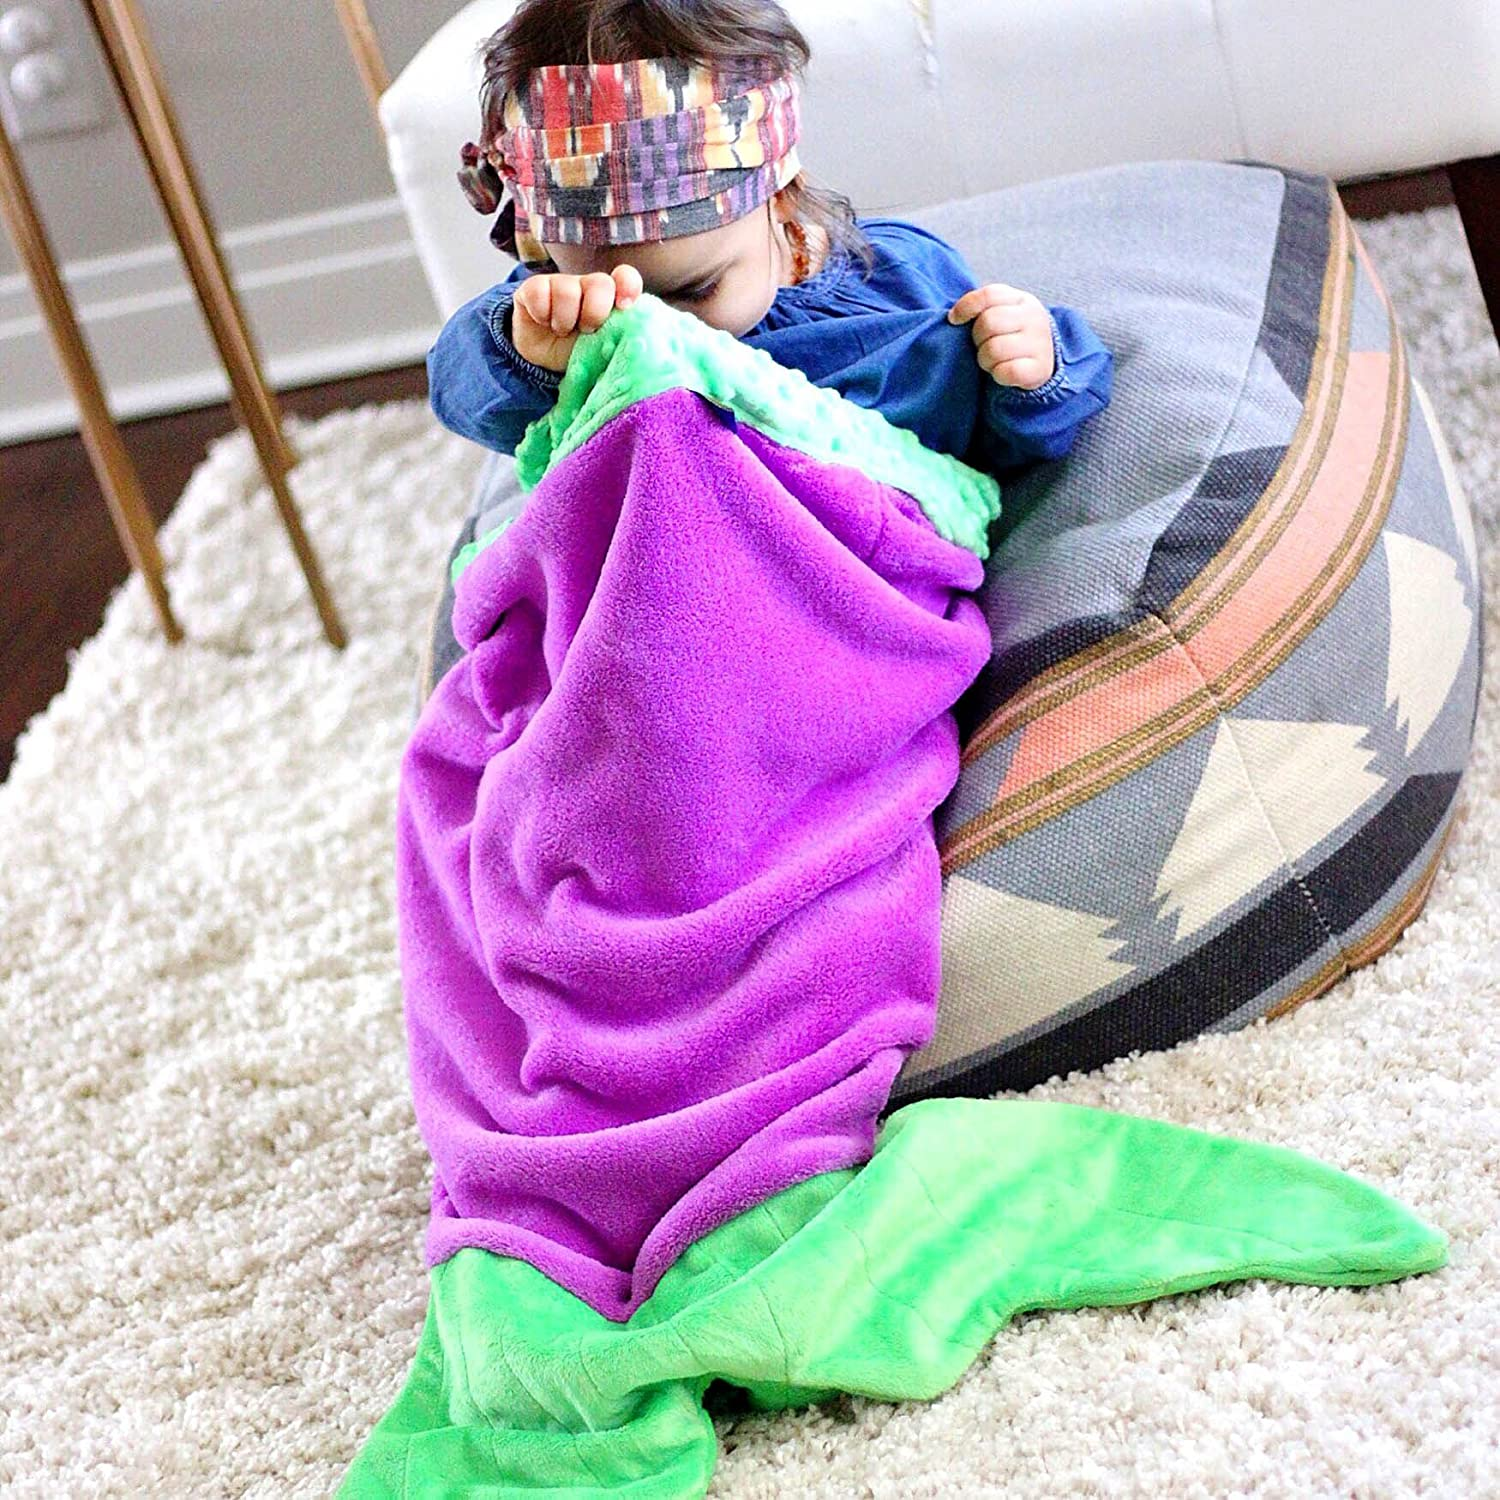 Perfect Purple and Seafoam Toddler Blanket for Girls BT0205 Blankie Tails Mermaid Tail Blanket for Toddlers Toddler Fleece Blanket That Lets Feet Fit Into The Tail